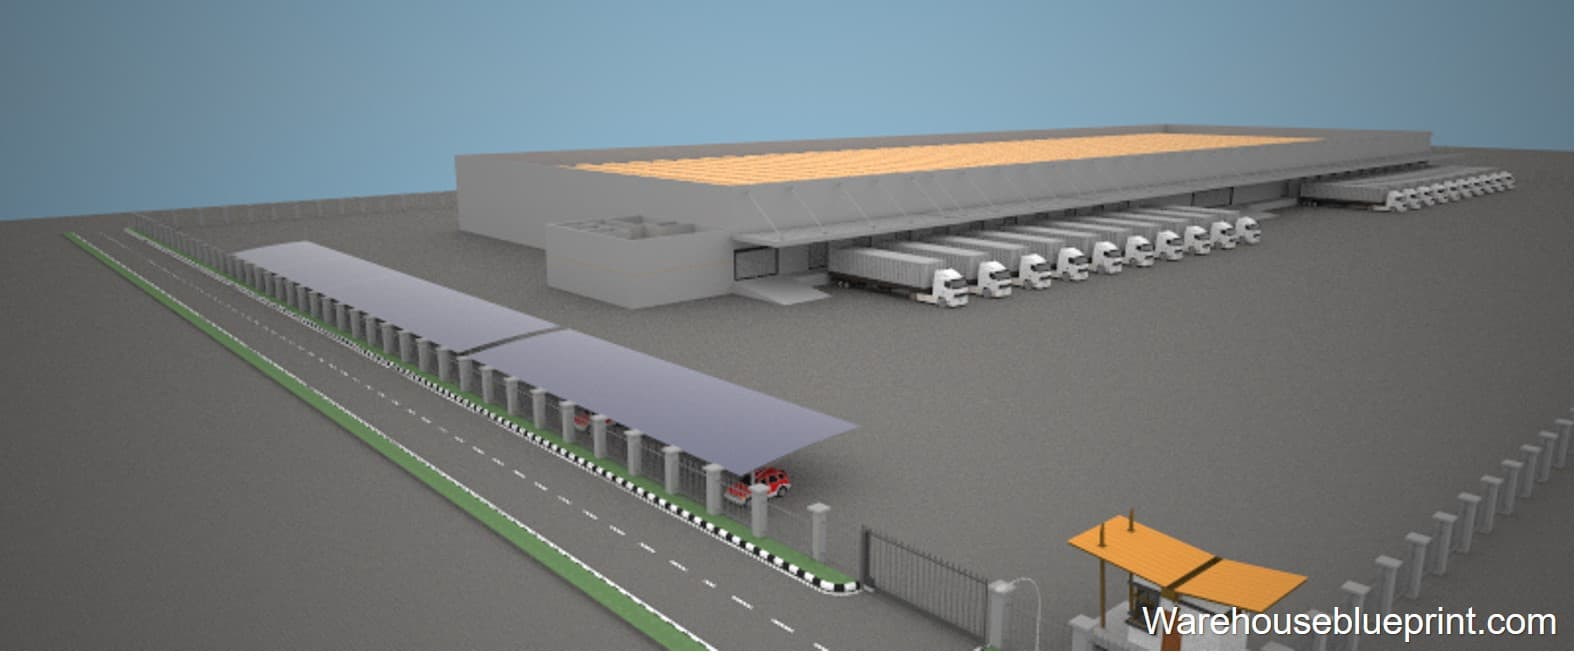 Warehouse Layout 18 - rendered